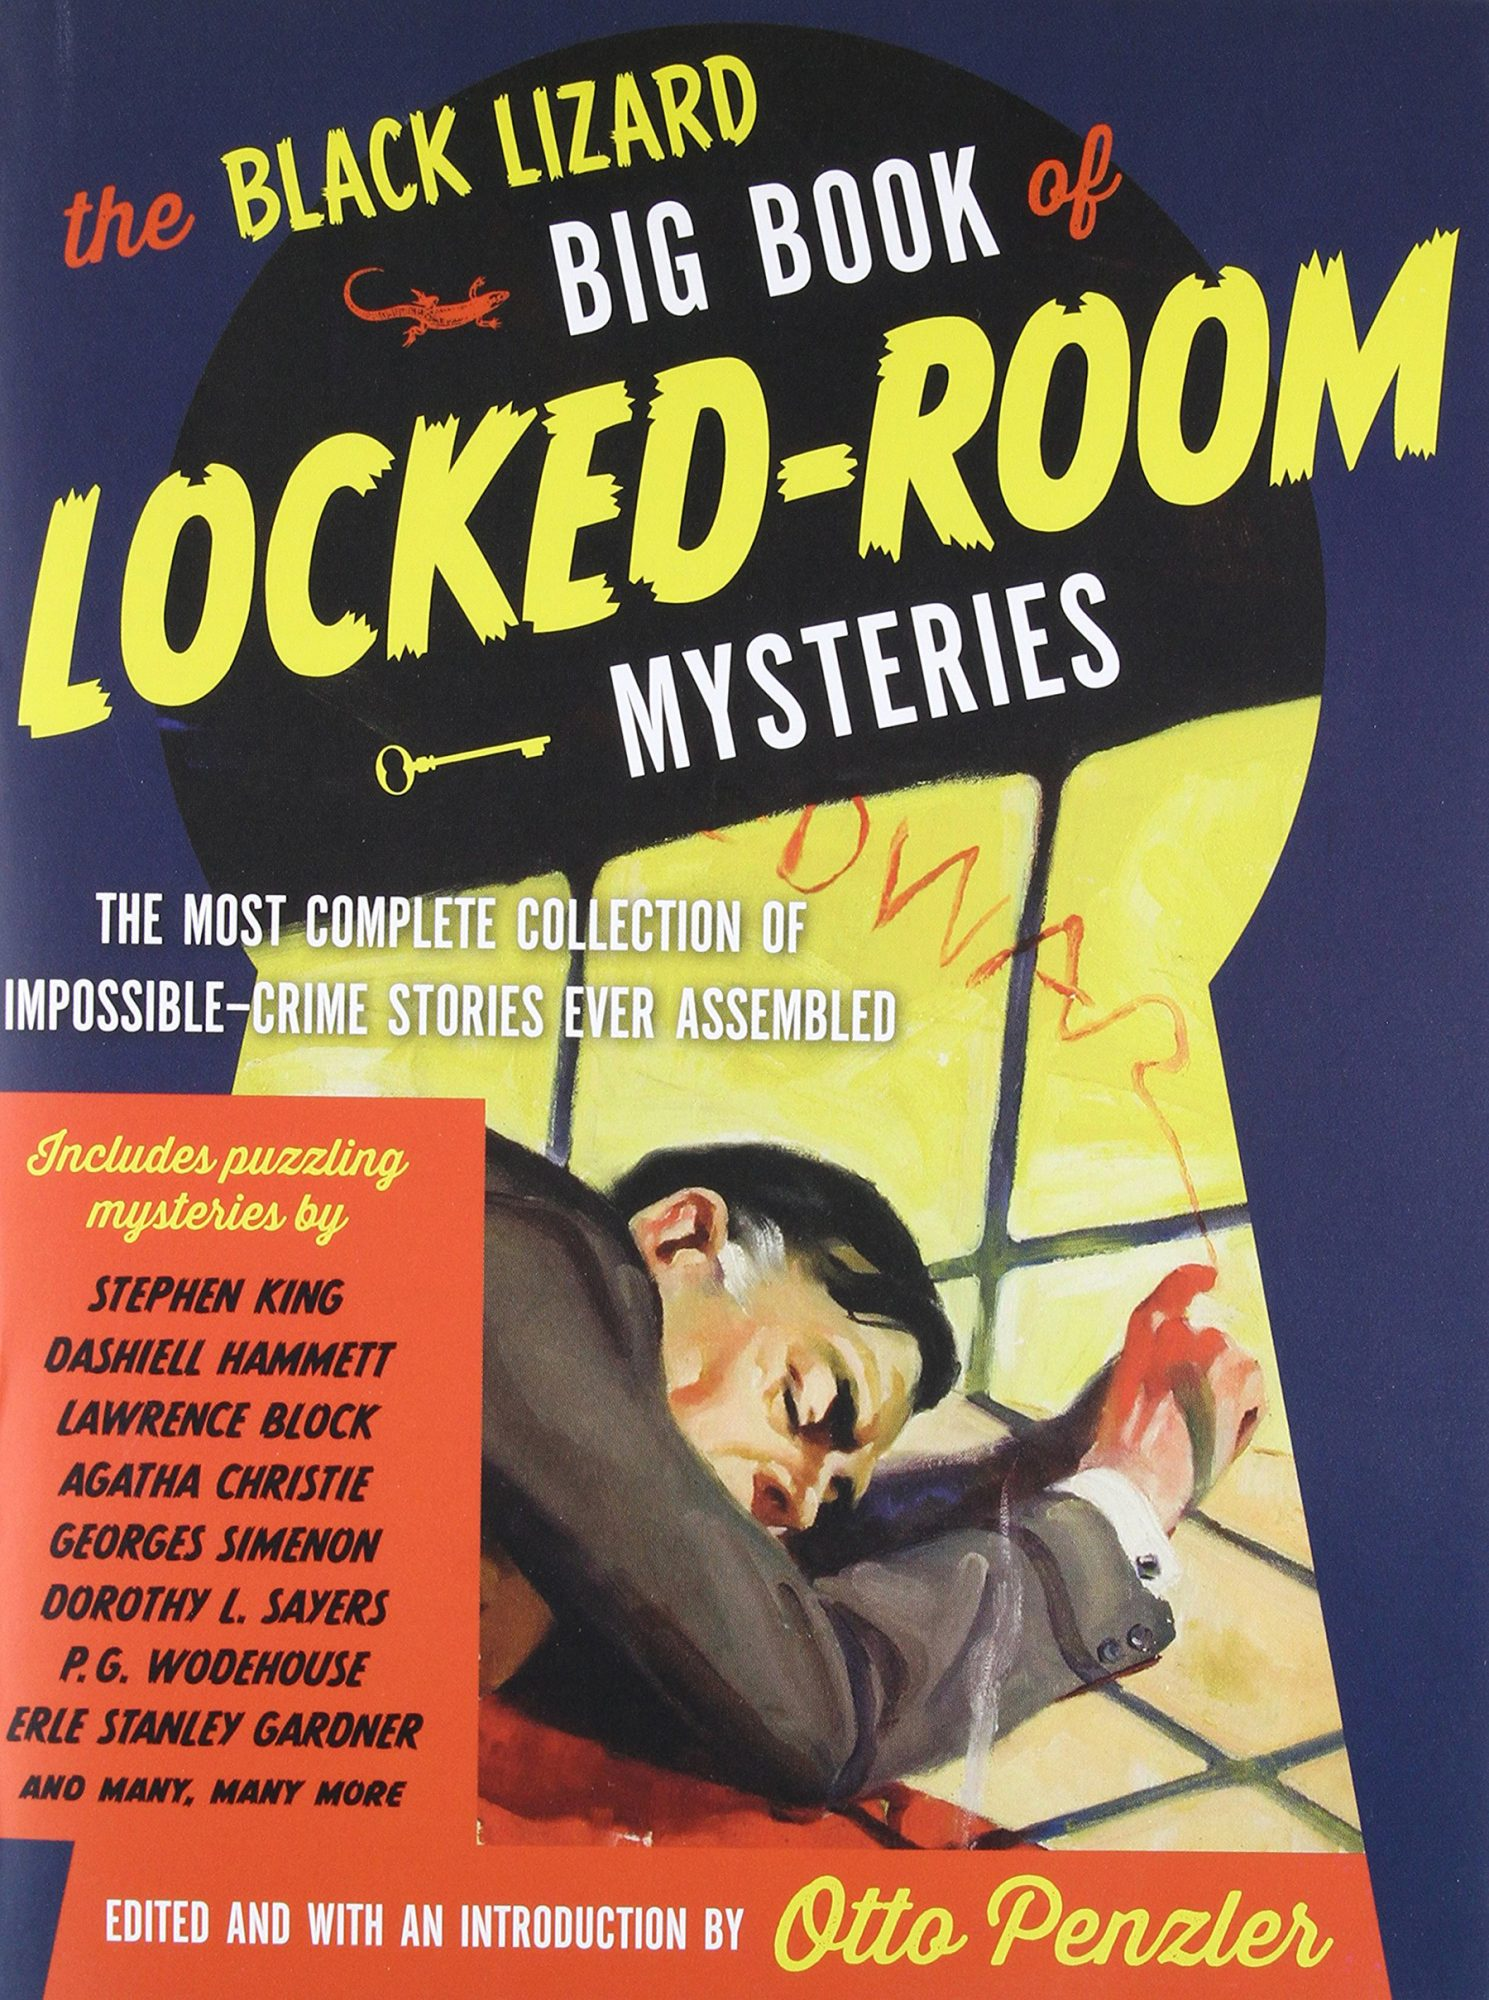 Otto Penzler (ed.), Black Lizard Big Book of Locked Room Mysteries